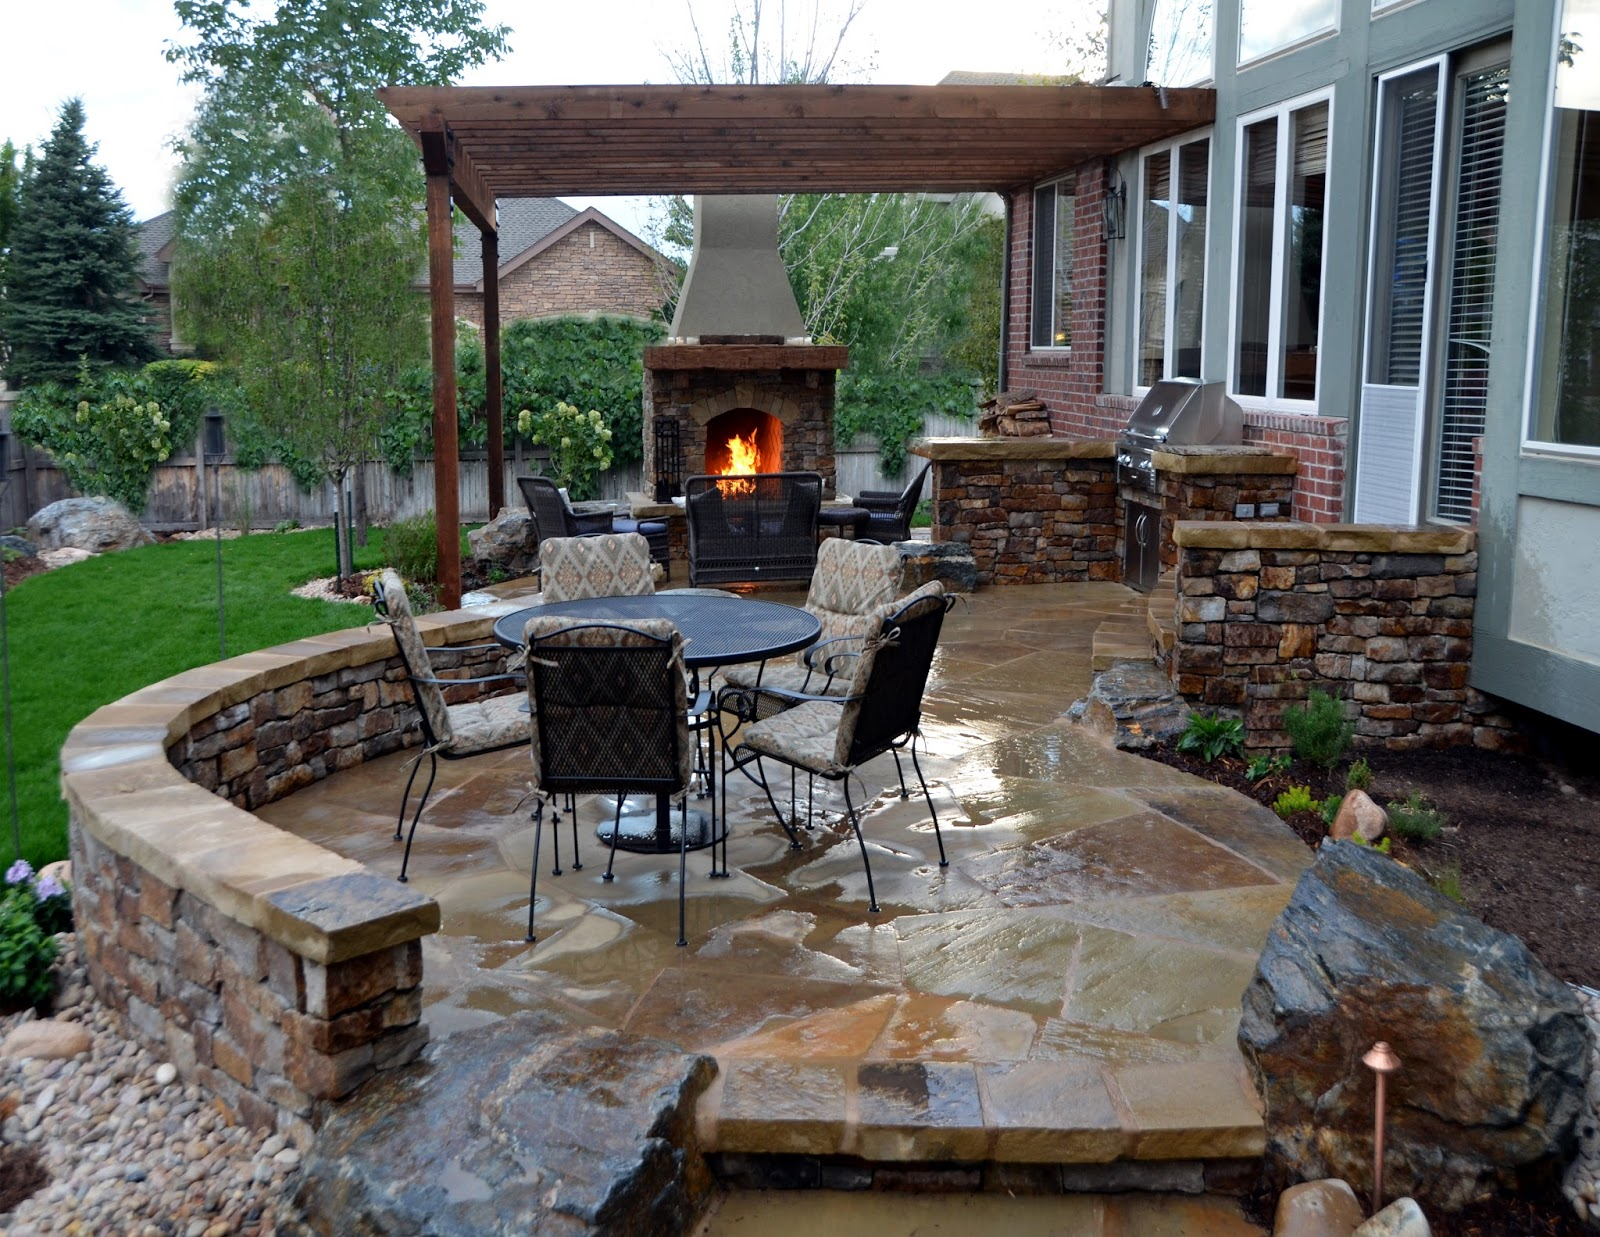 Maximize Comfort on Backyard Patio Ideas, Patio Ideas on a ... on Townhouse Patio Design Ideas id=64379